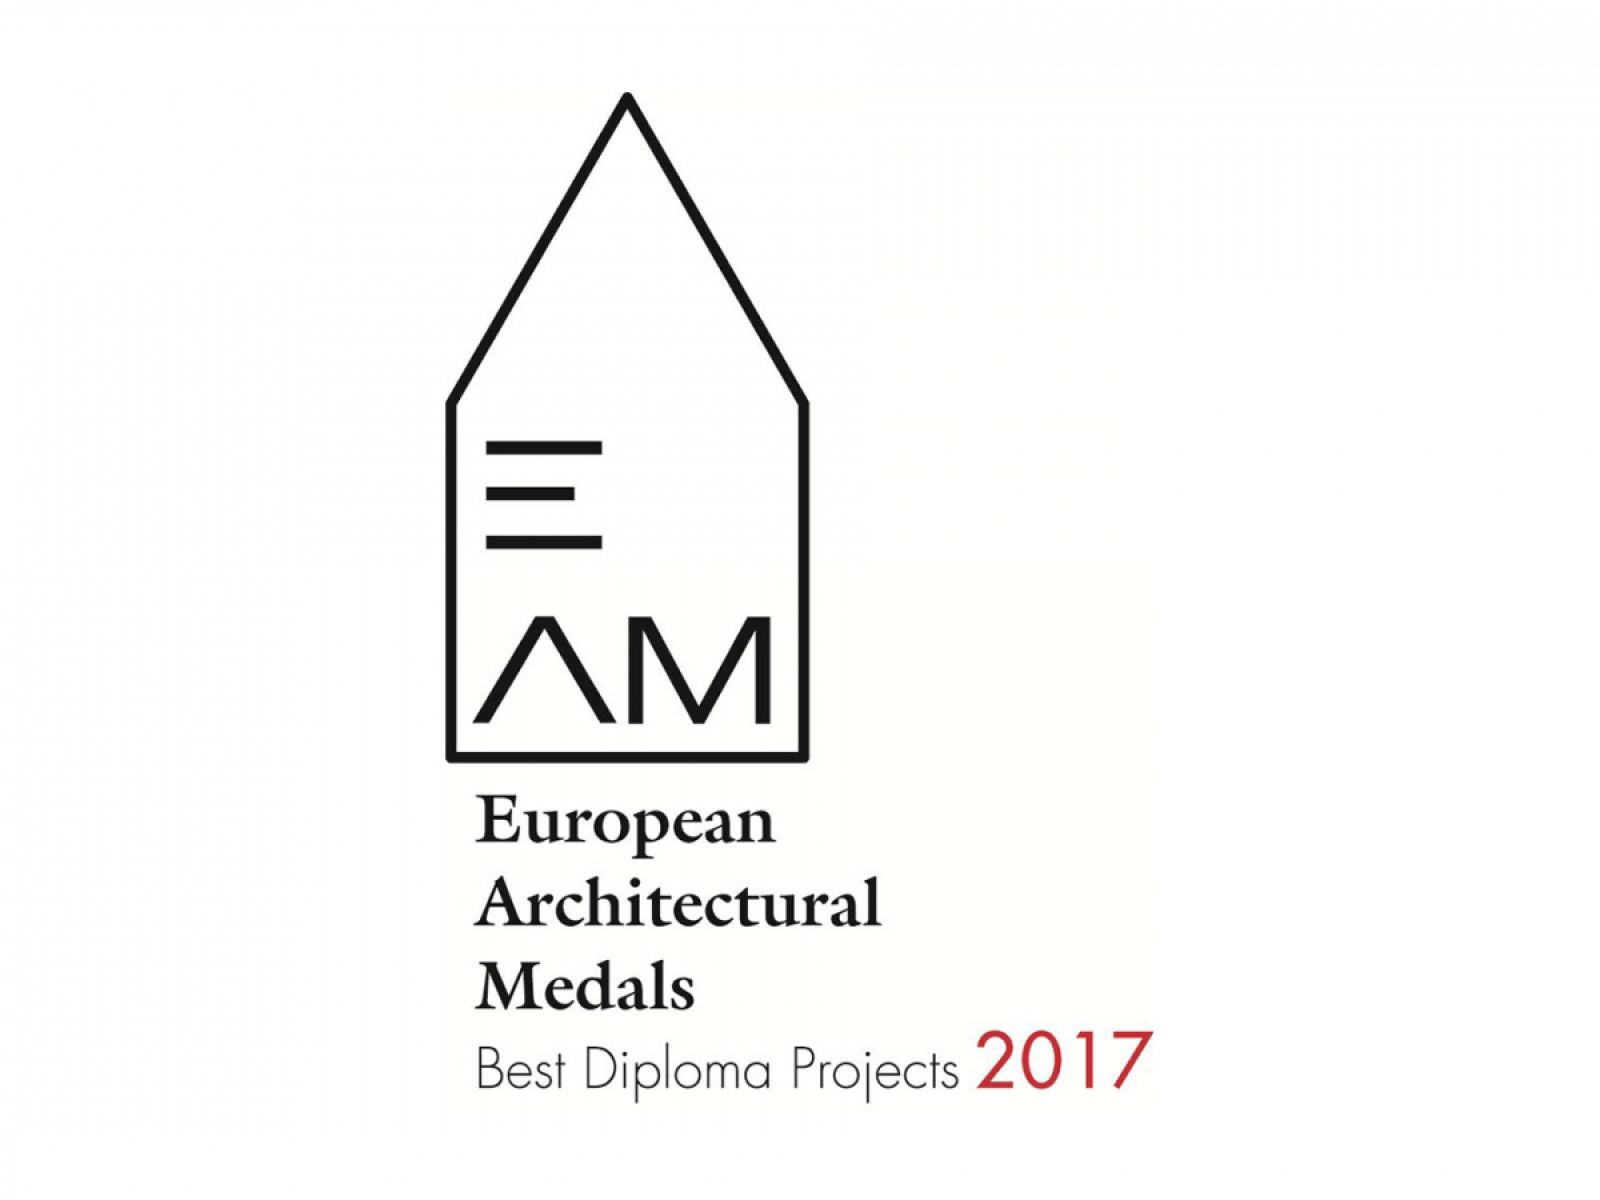 One United Properties supported The European Architectural Medal For Best Diploma Project